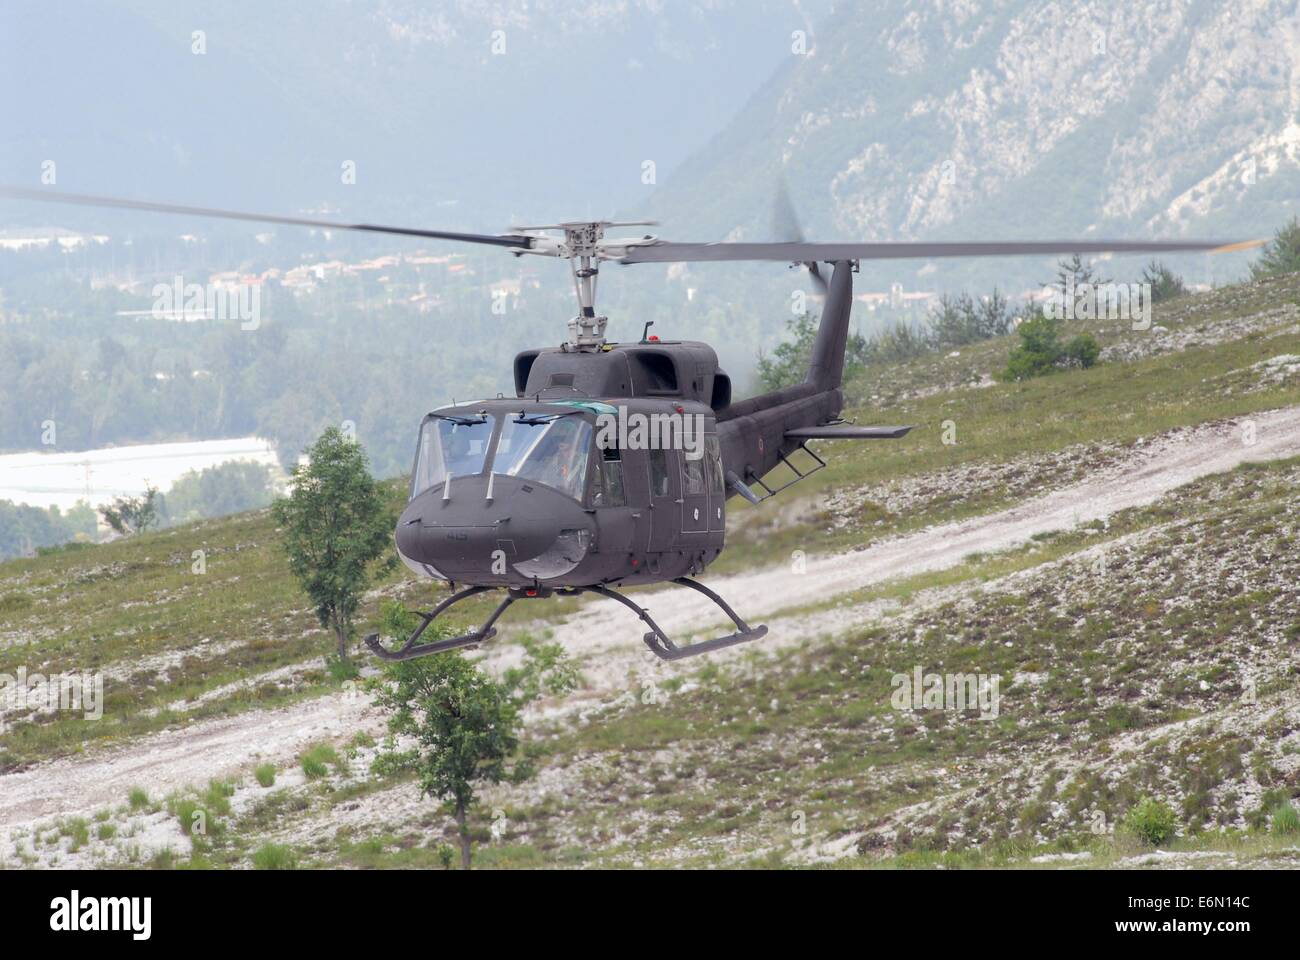 Italian Army, Agusta-Bell AB-212 helicopter Stock Photo